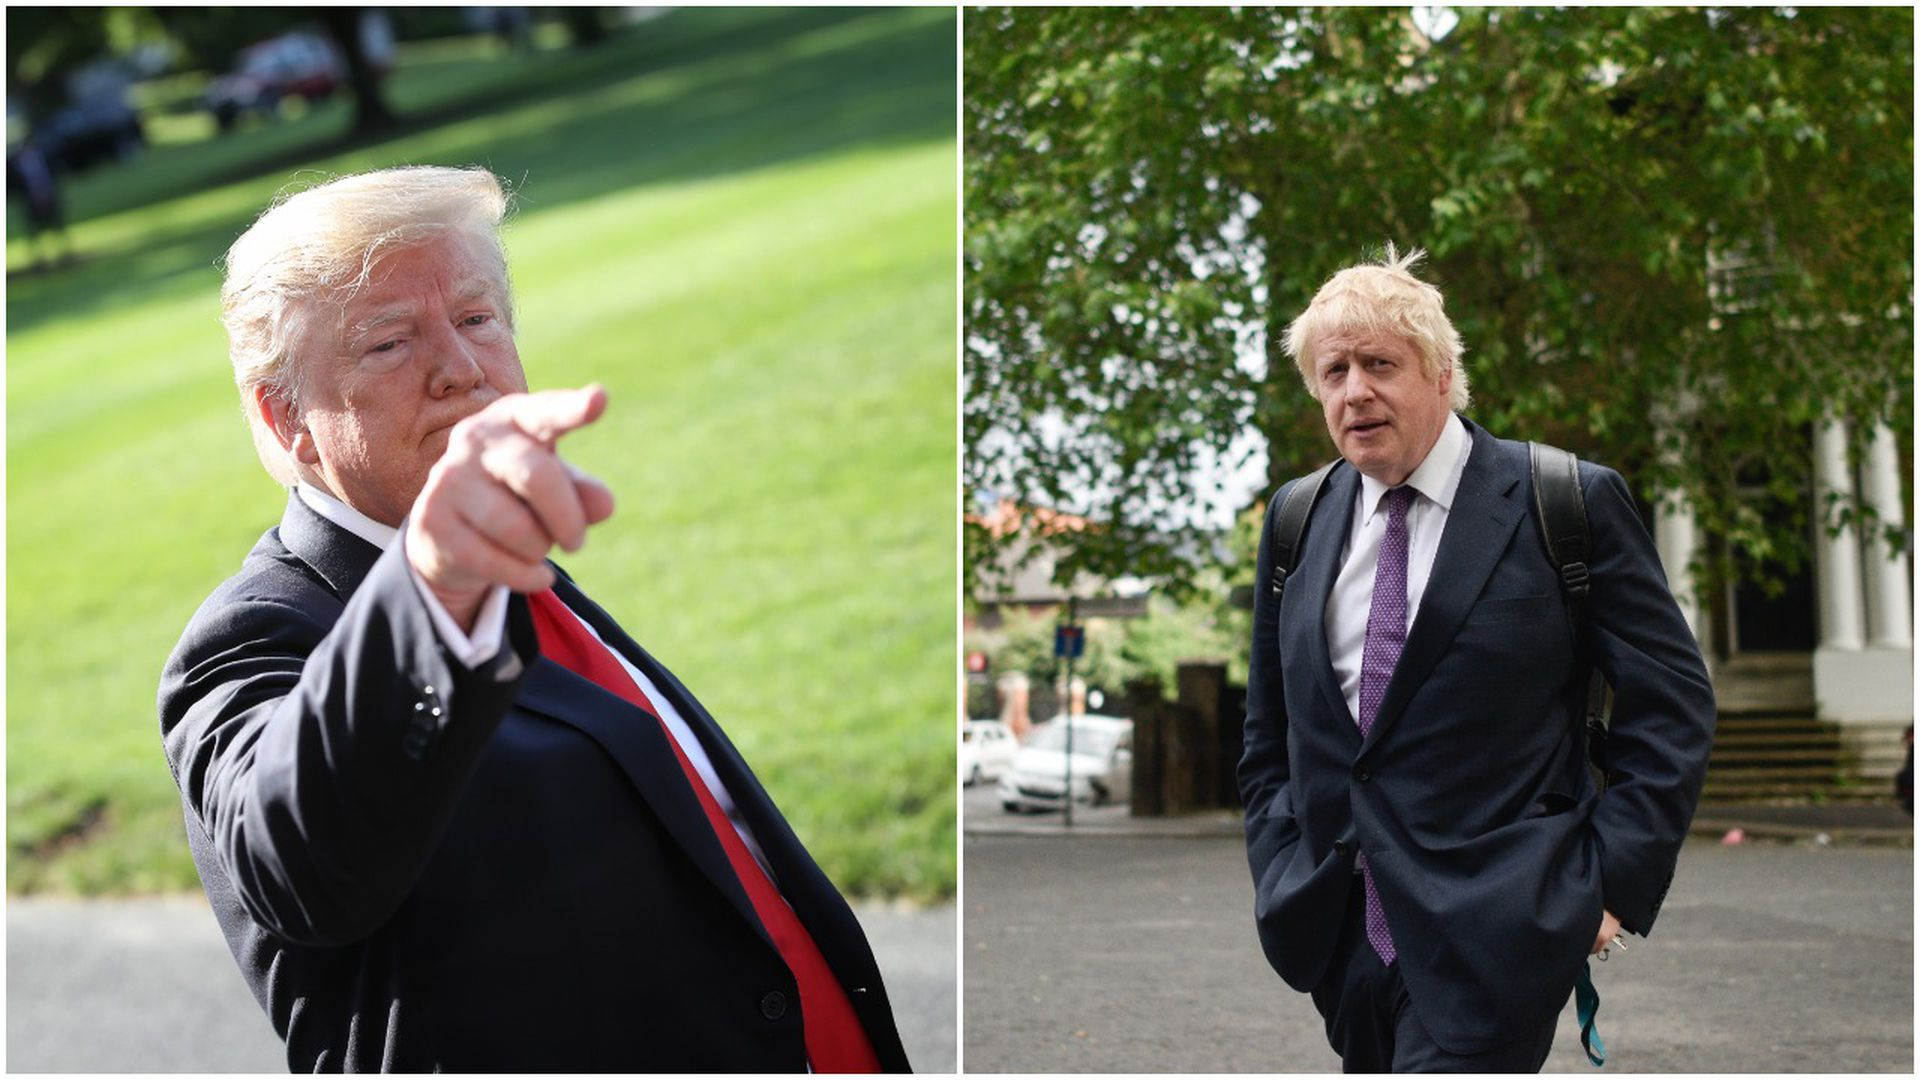 This image a split screen between Trump and Boris Johnson.